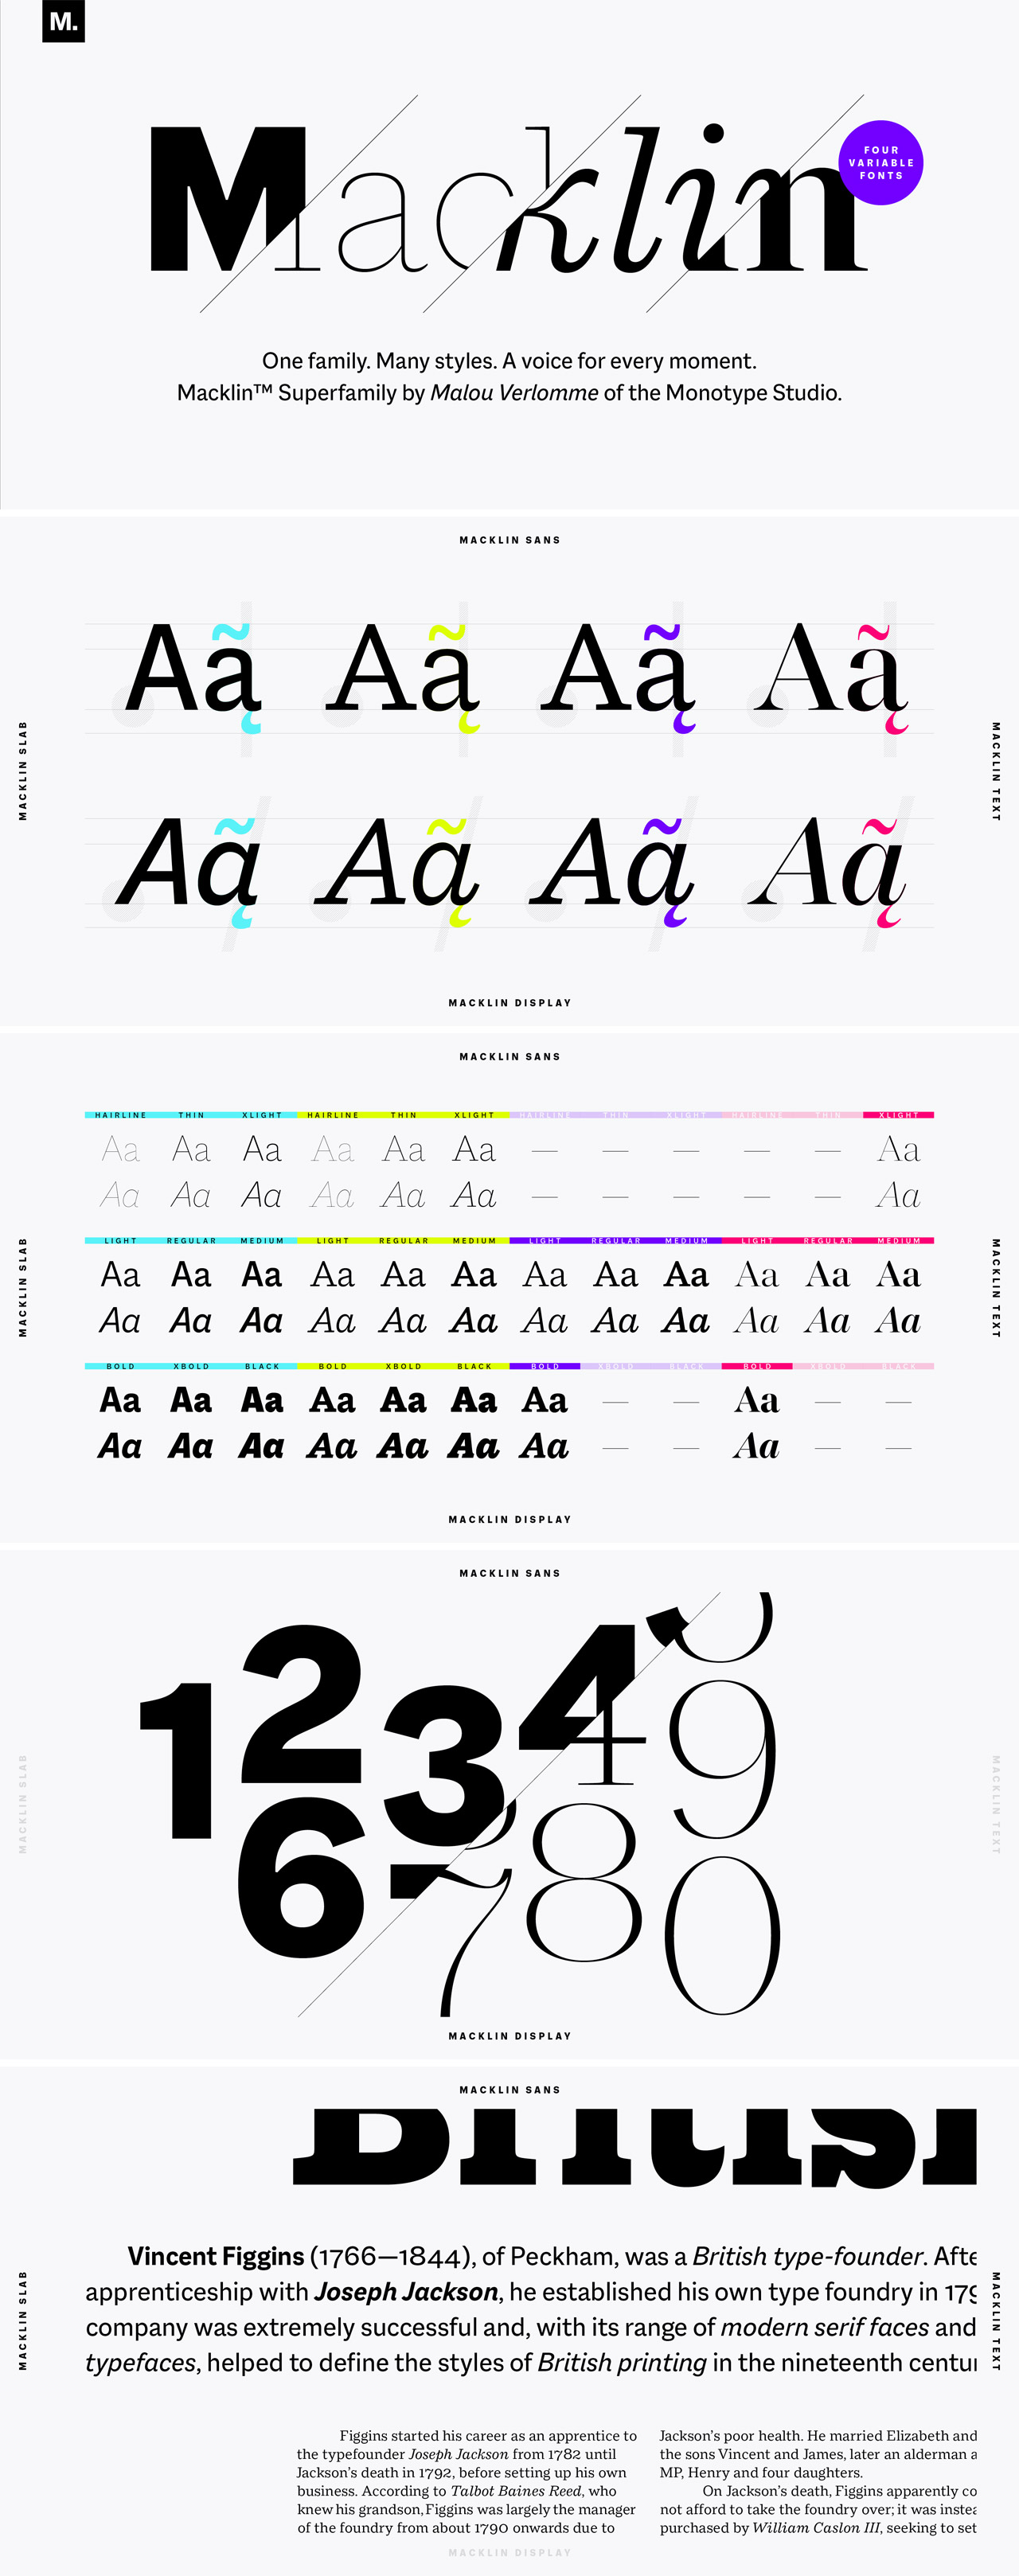 Macklin, a typeface superfamily from Monotype built for a new generation of design.